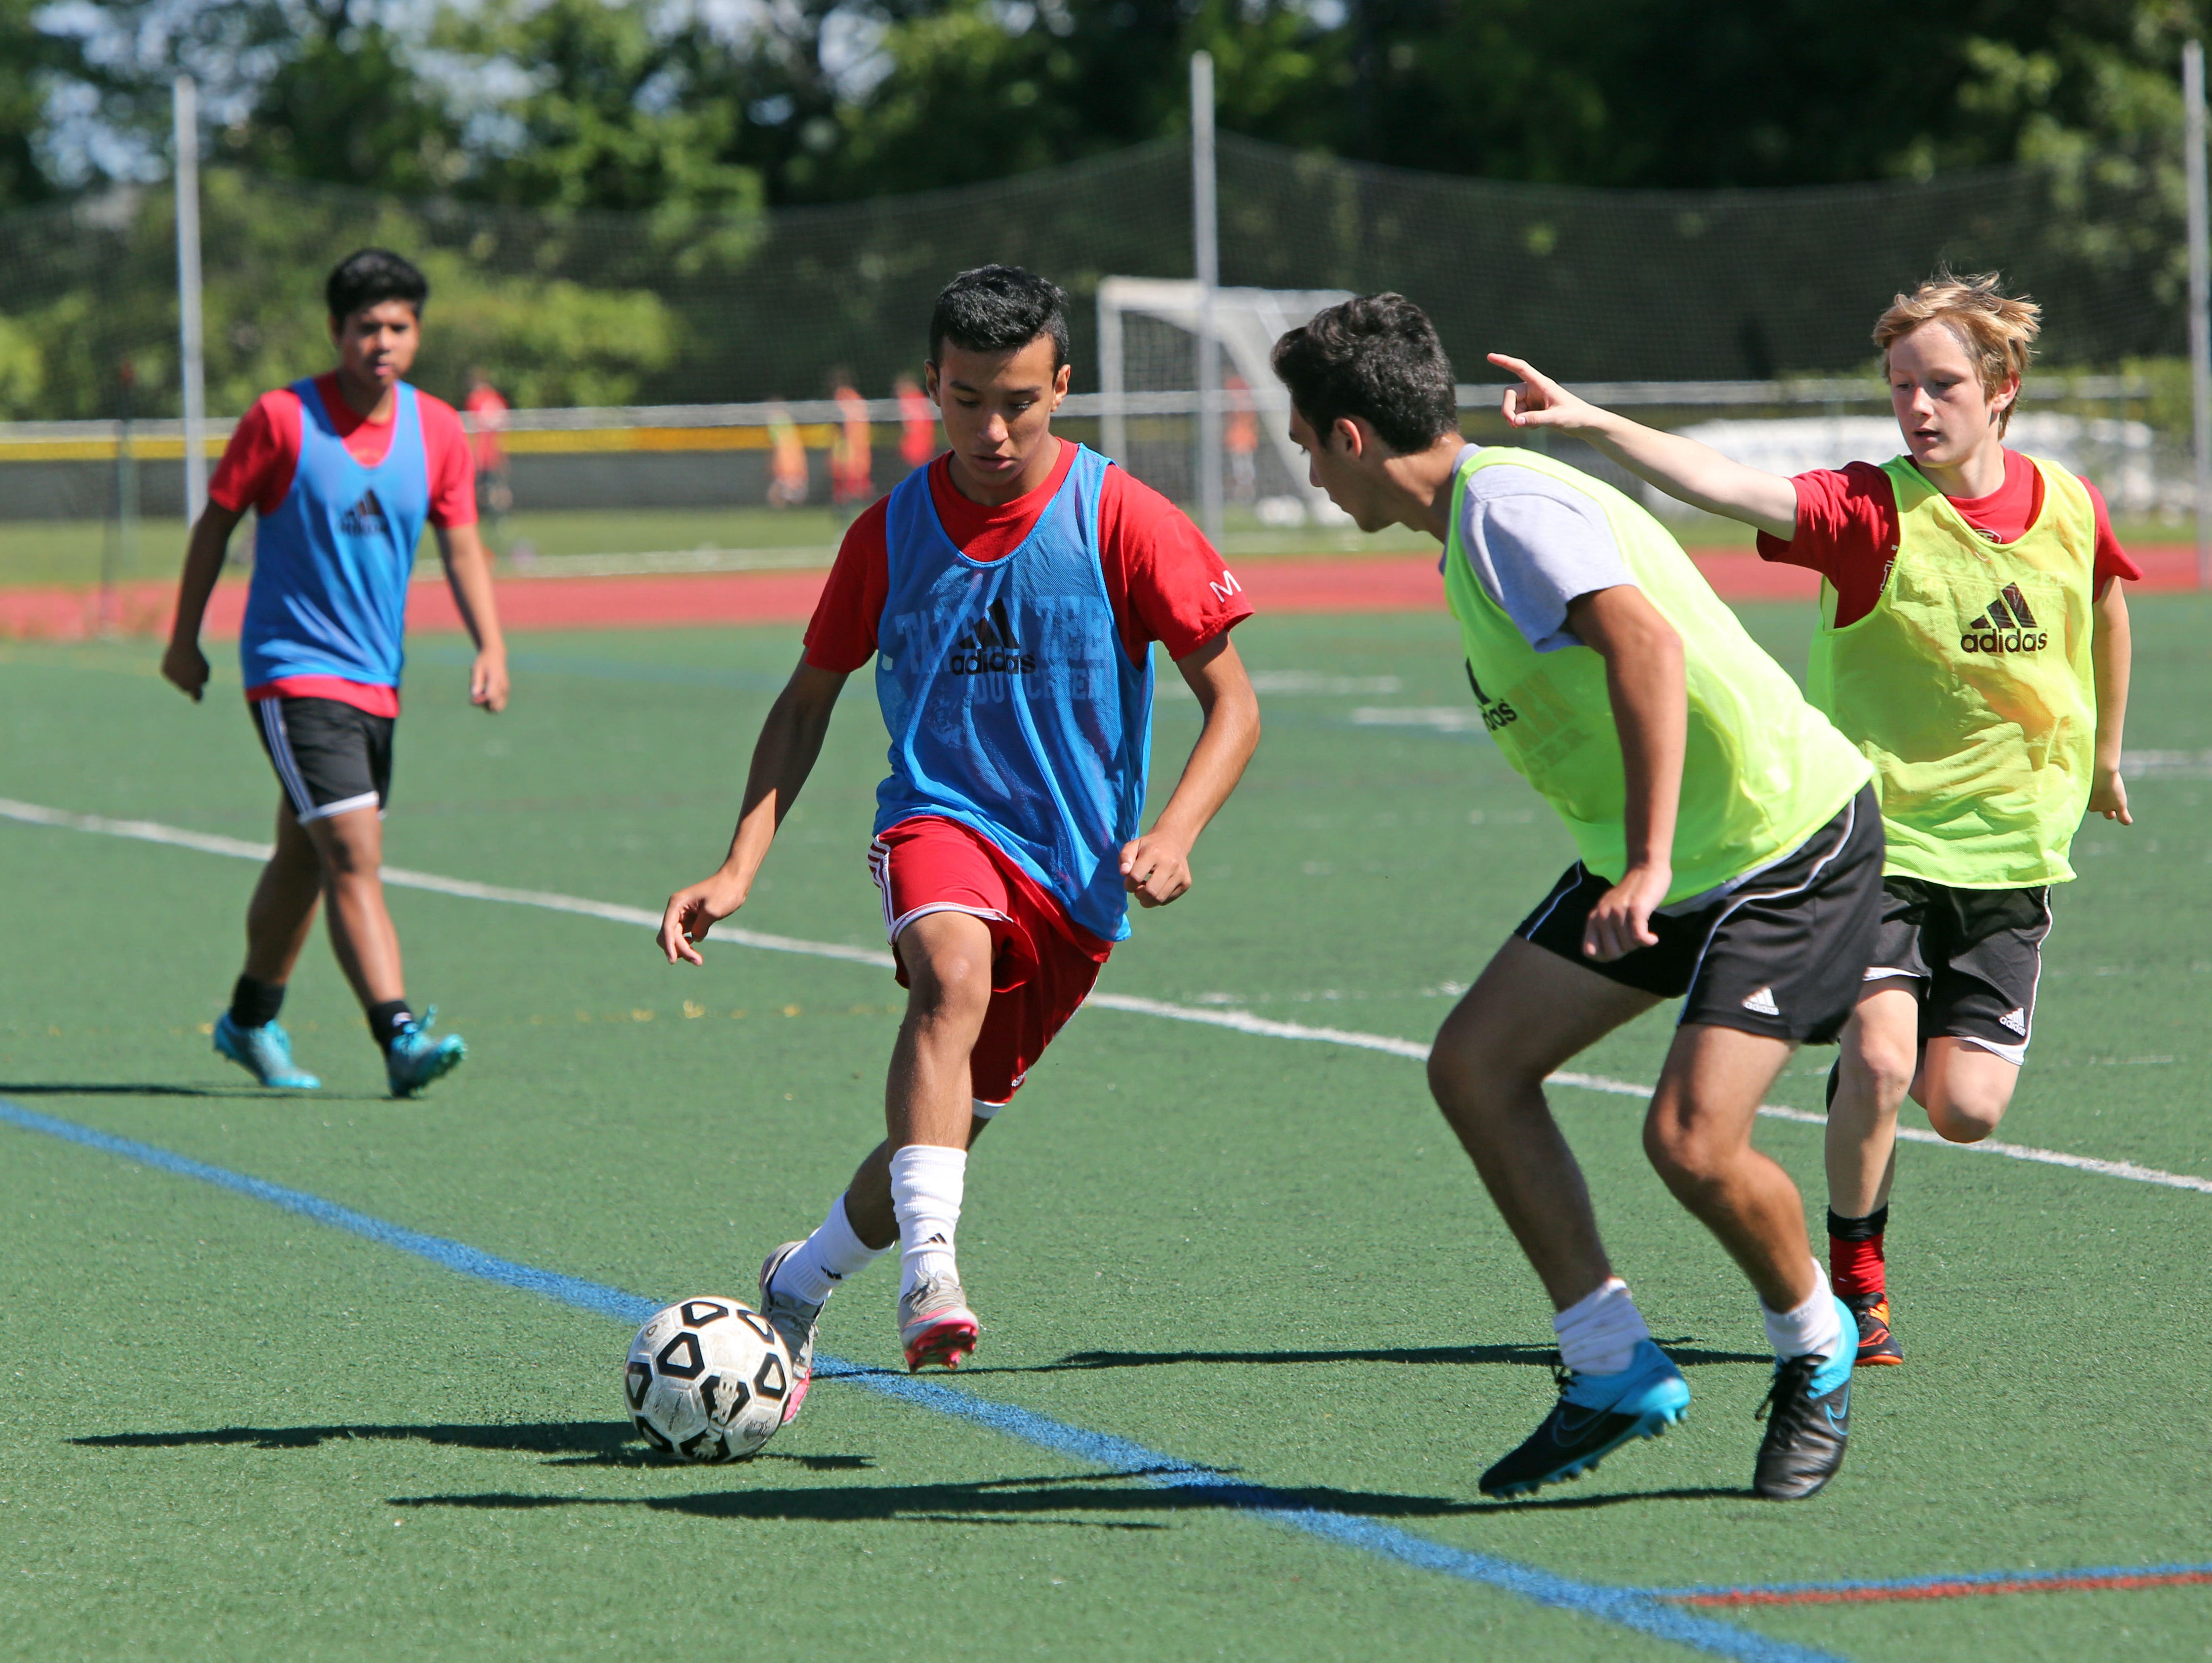 Tappan Zee sophomore Jorge Umana during the first day of soccer practice at Tappan Zee High School Aug. 22, 2016.